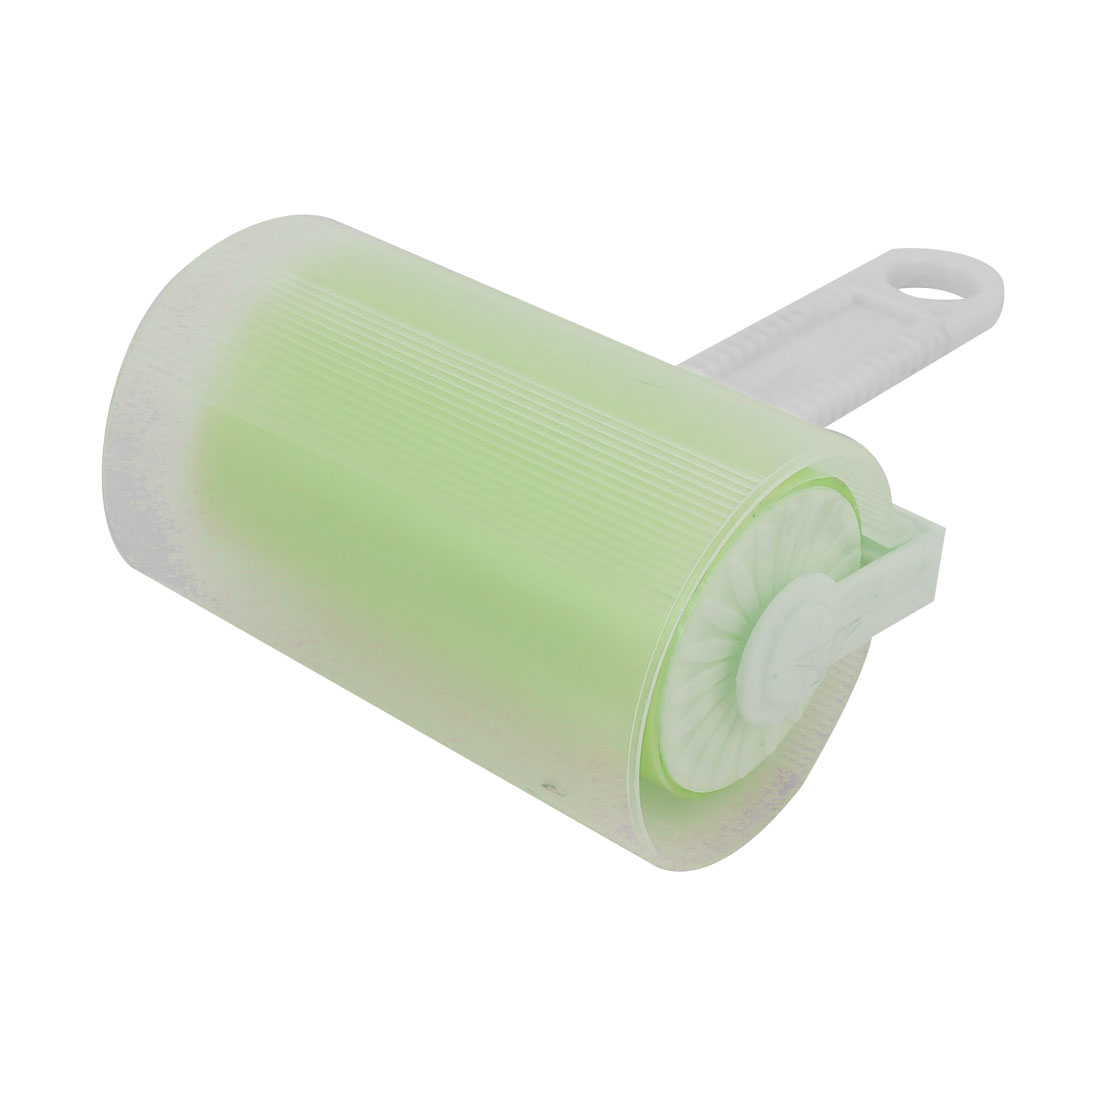 Home Carpet Pet Hair Dust Remover Clothes Cleaning Sticky Lint Roller Green